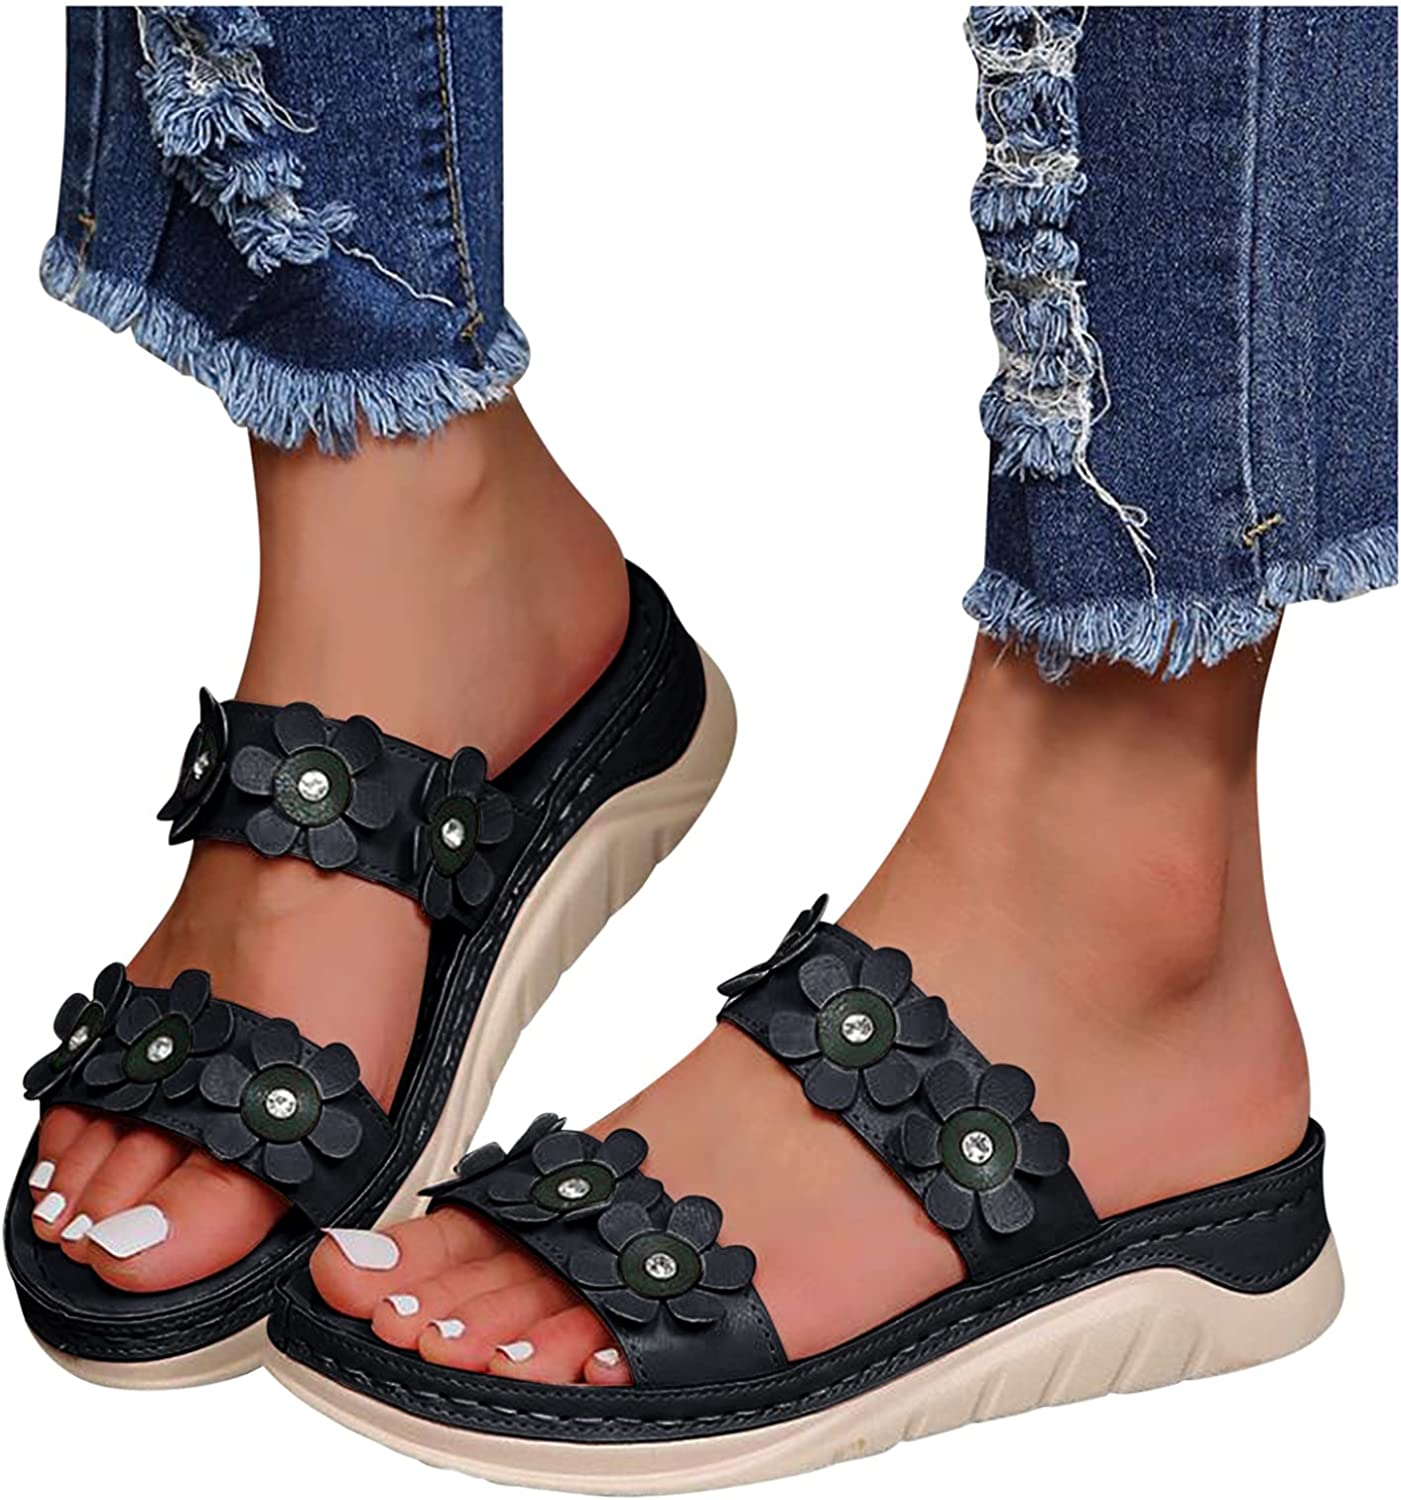 Olymmont Platform Sandals for Women Casual Summer Slip-On Open Toe Breathable Slides Dual Flower Crystal Shiny Pretty Slippers Arch Support Memory Foam Flip Flops Beach Travel (Black, 6.5-7)